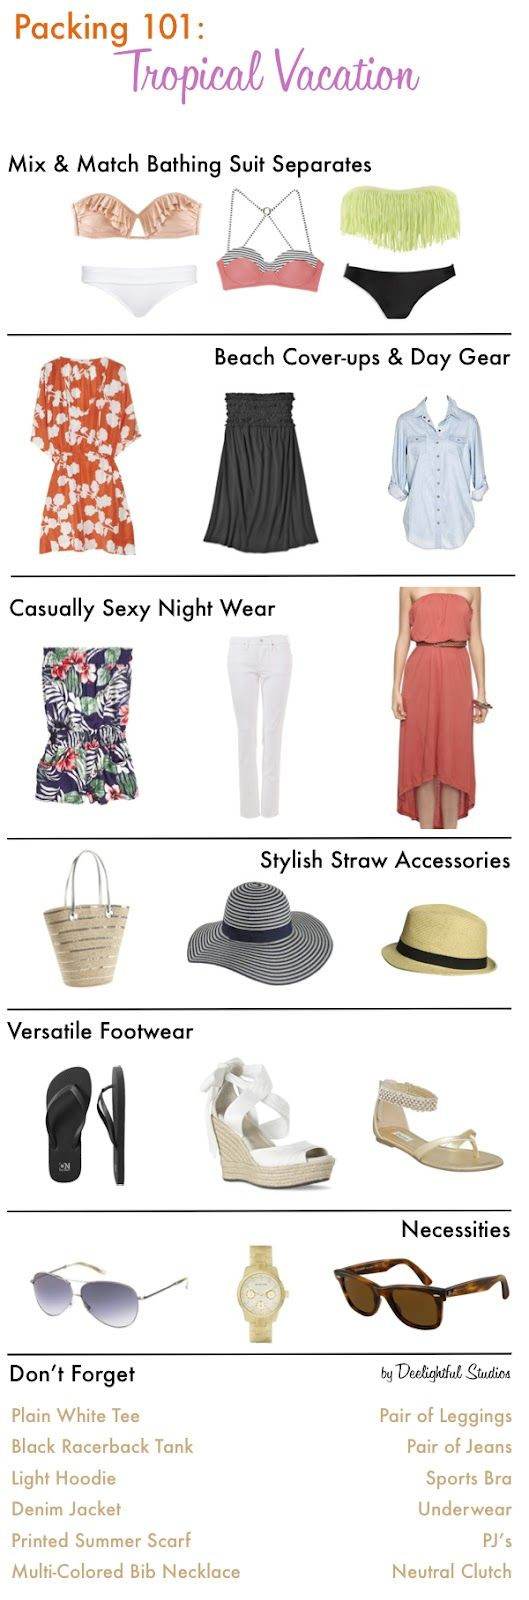 Packing for a tropical vacation. This is the perfect packing list. I also love including the hats, it's the easiest way to practice Anti-Aging!